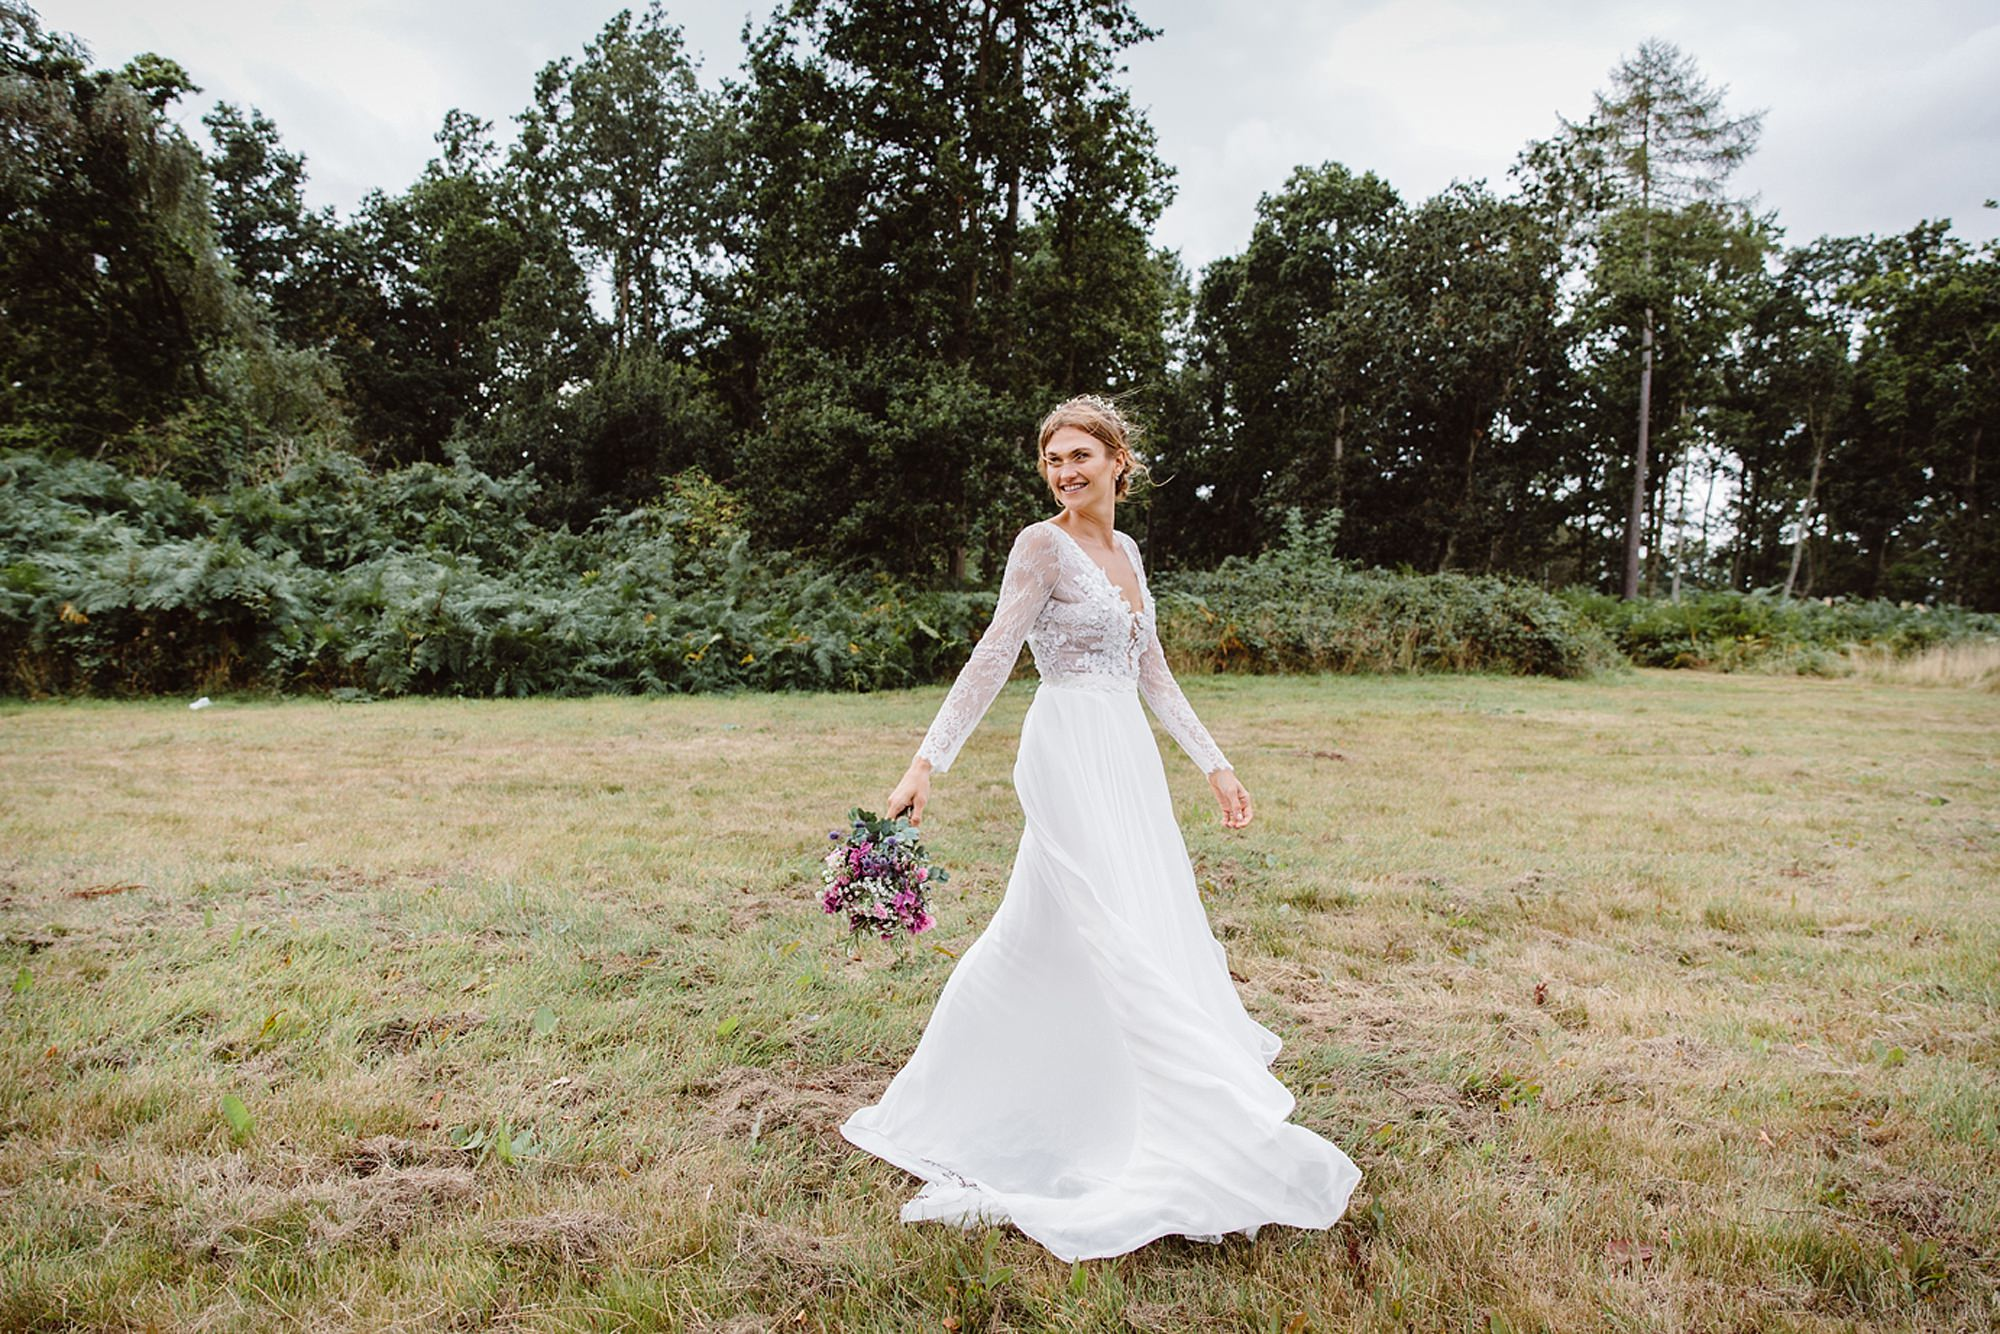 Marks Hall Estate wedding photography portrait of bride